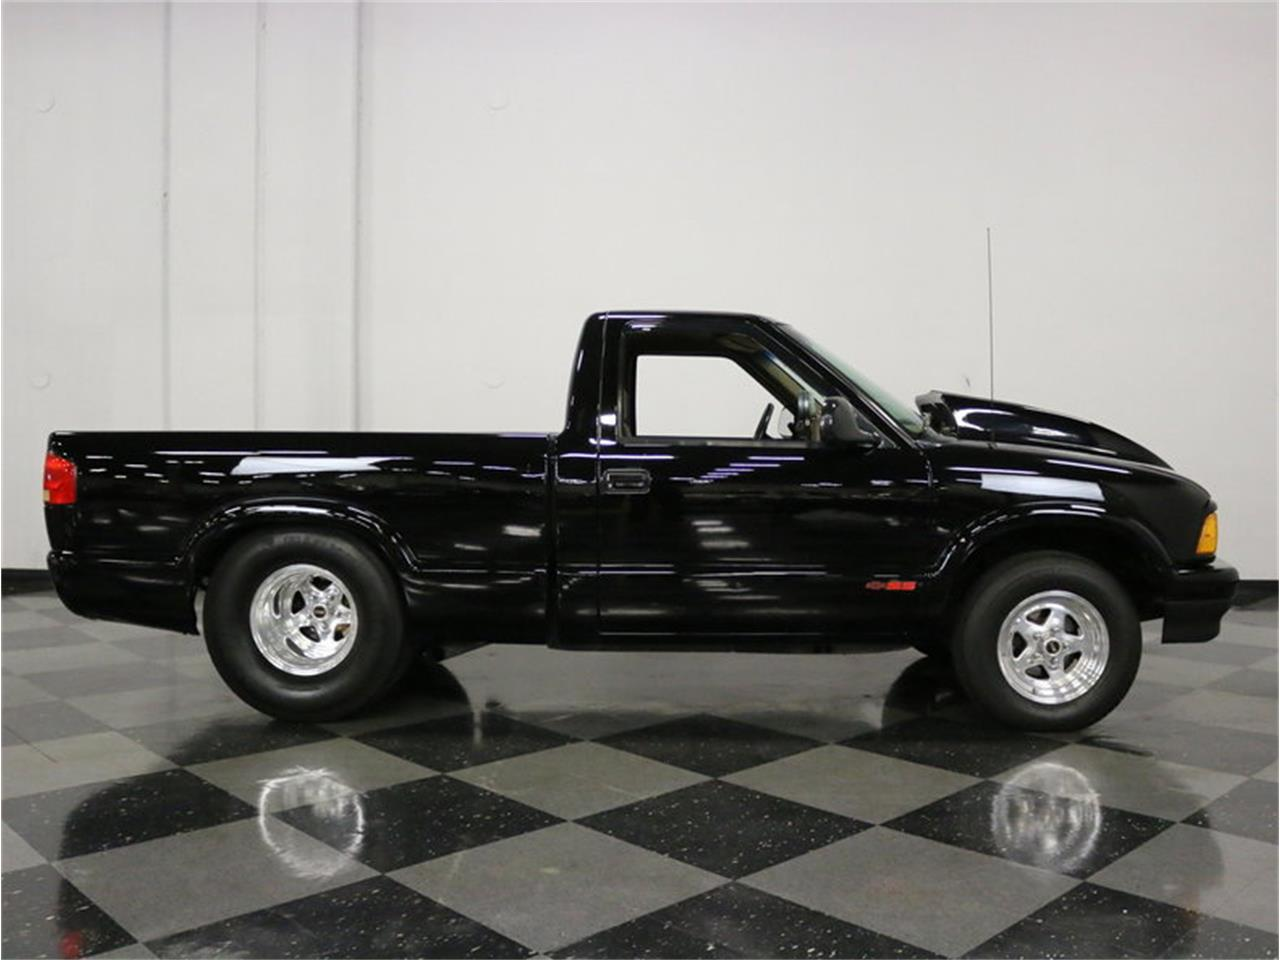 Large Picture of 1995 Chevrolet S-10 SS Pro Street - $17,995.00 - MOBZ